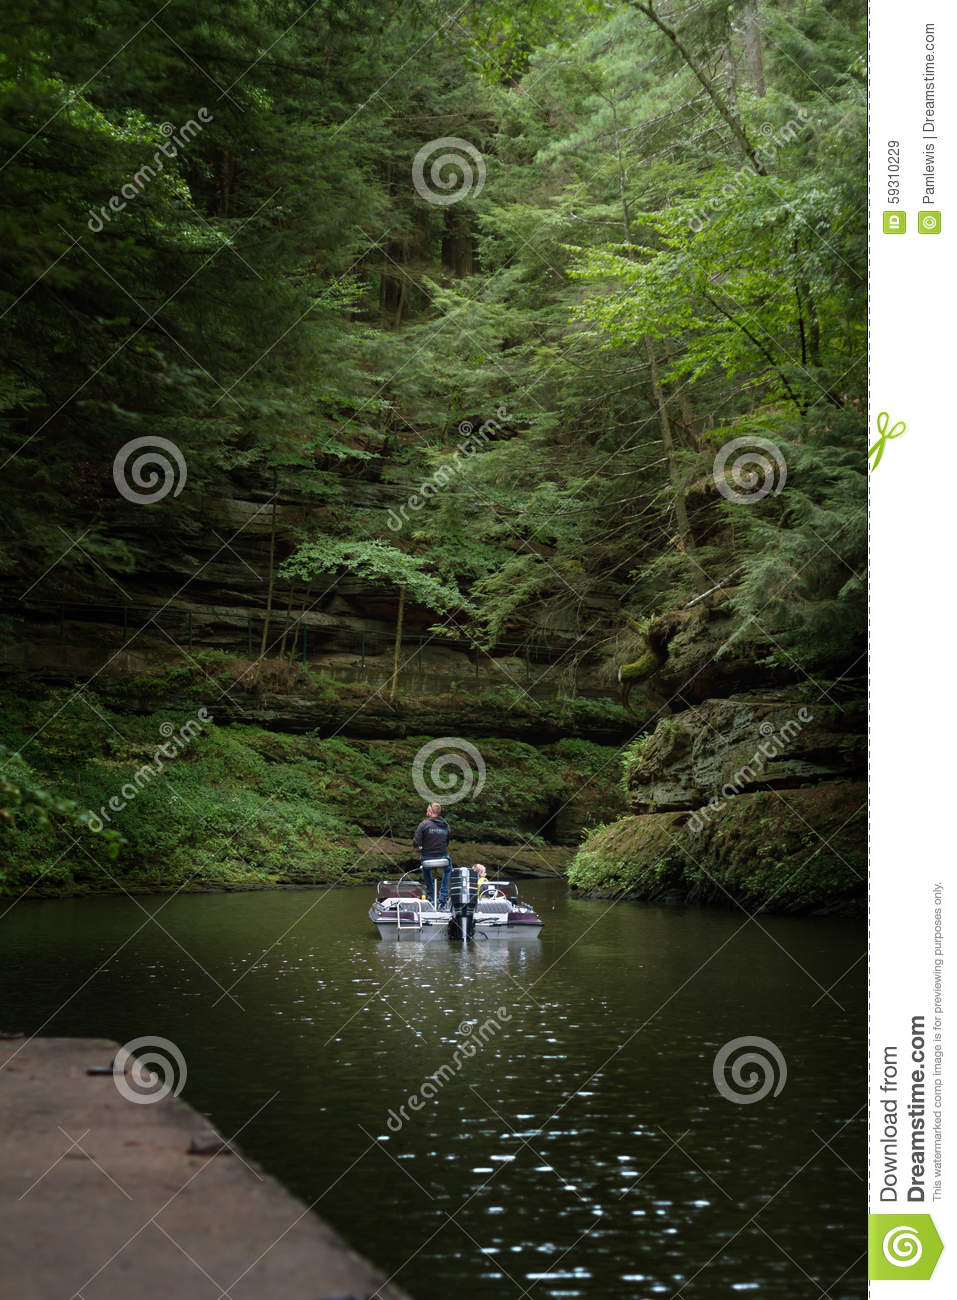 Fishing in the wisconsin river editorial stock image for Wisconsin dells fishing report